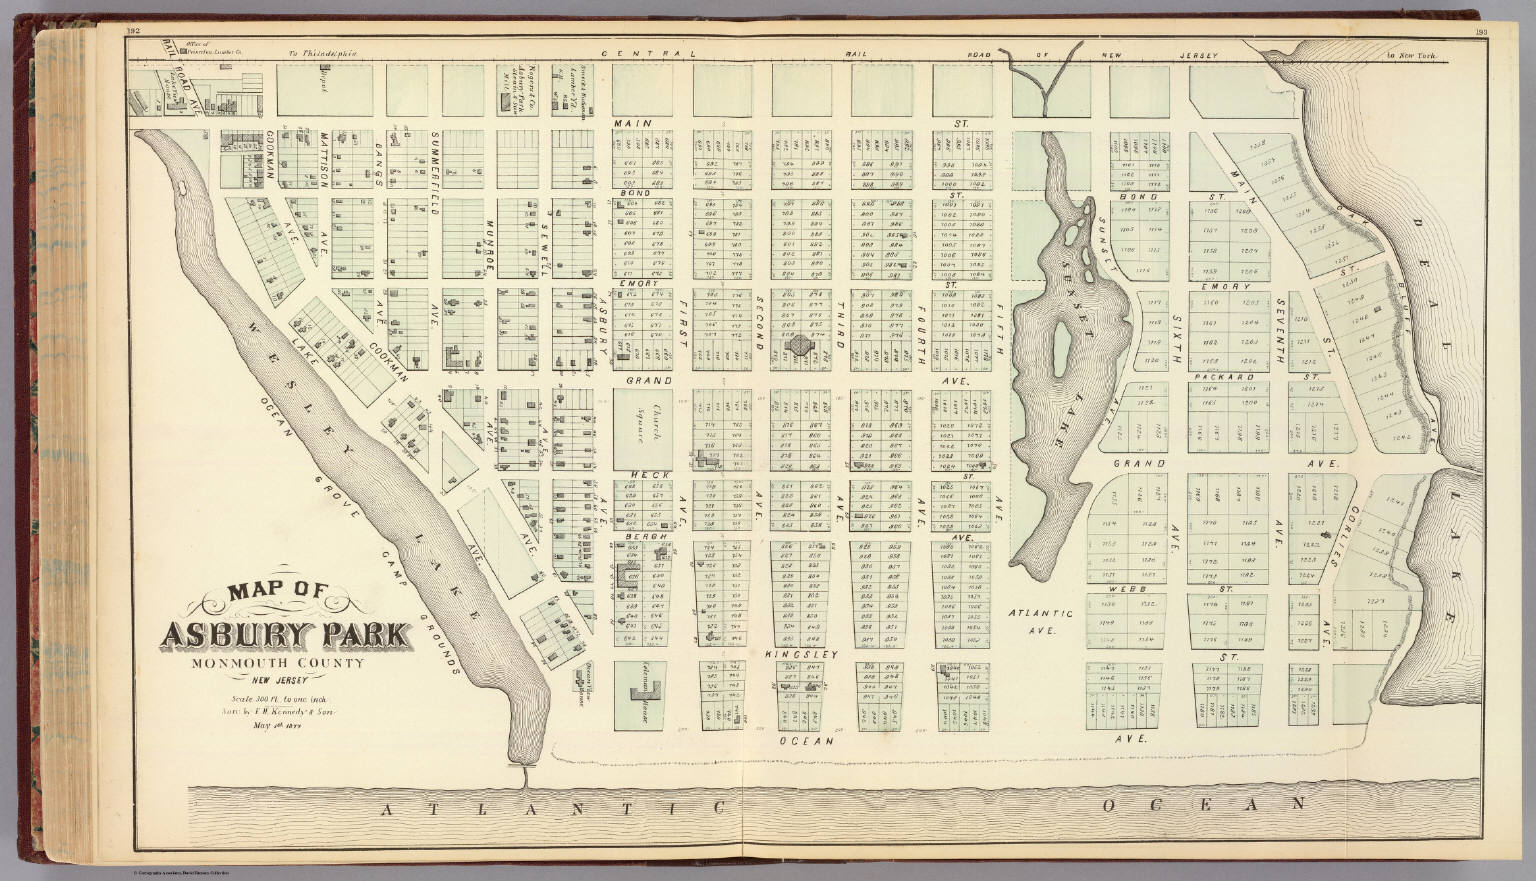 Asbury Park New Jersey Map.Map Of Asbury Park Monmouth County New Jersey David Rumsey